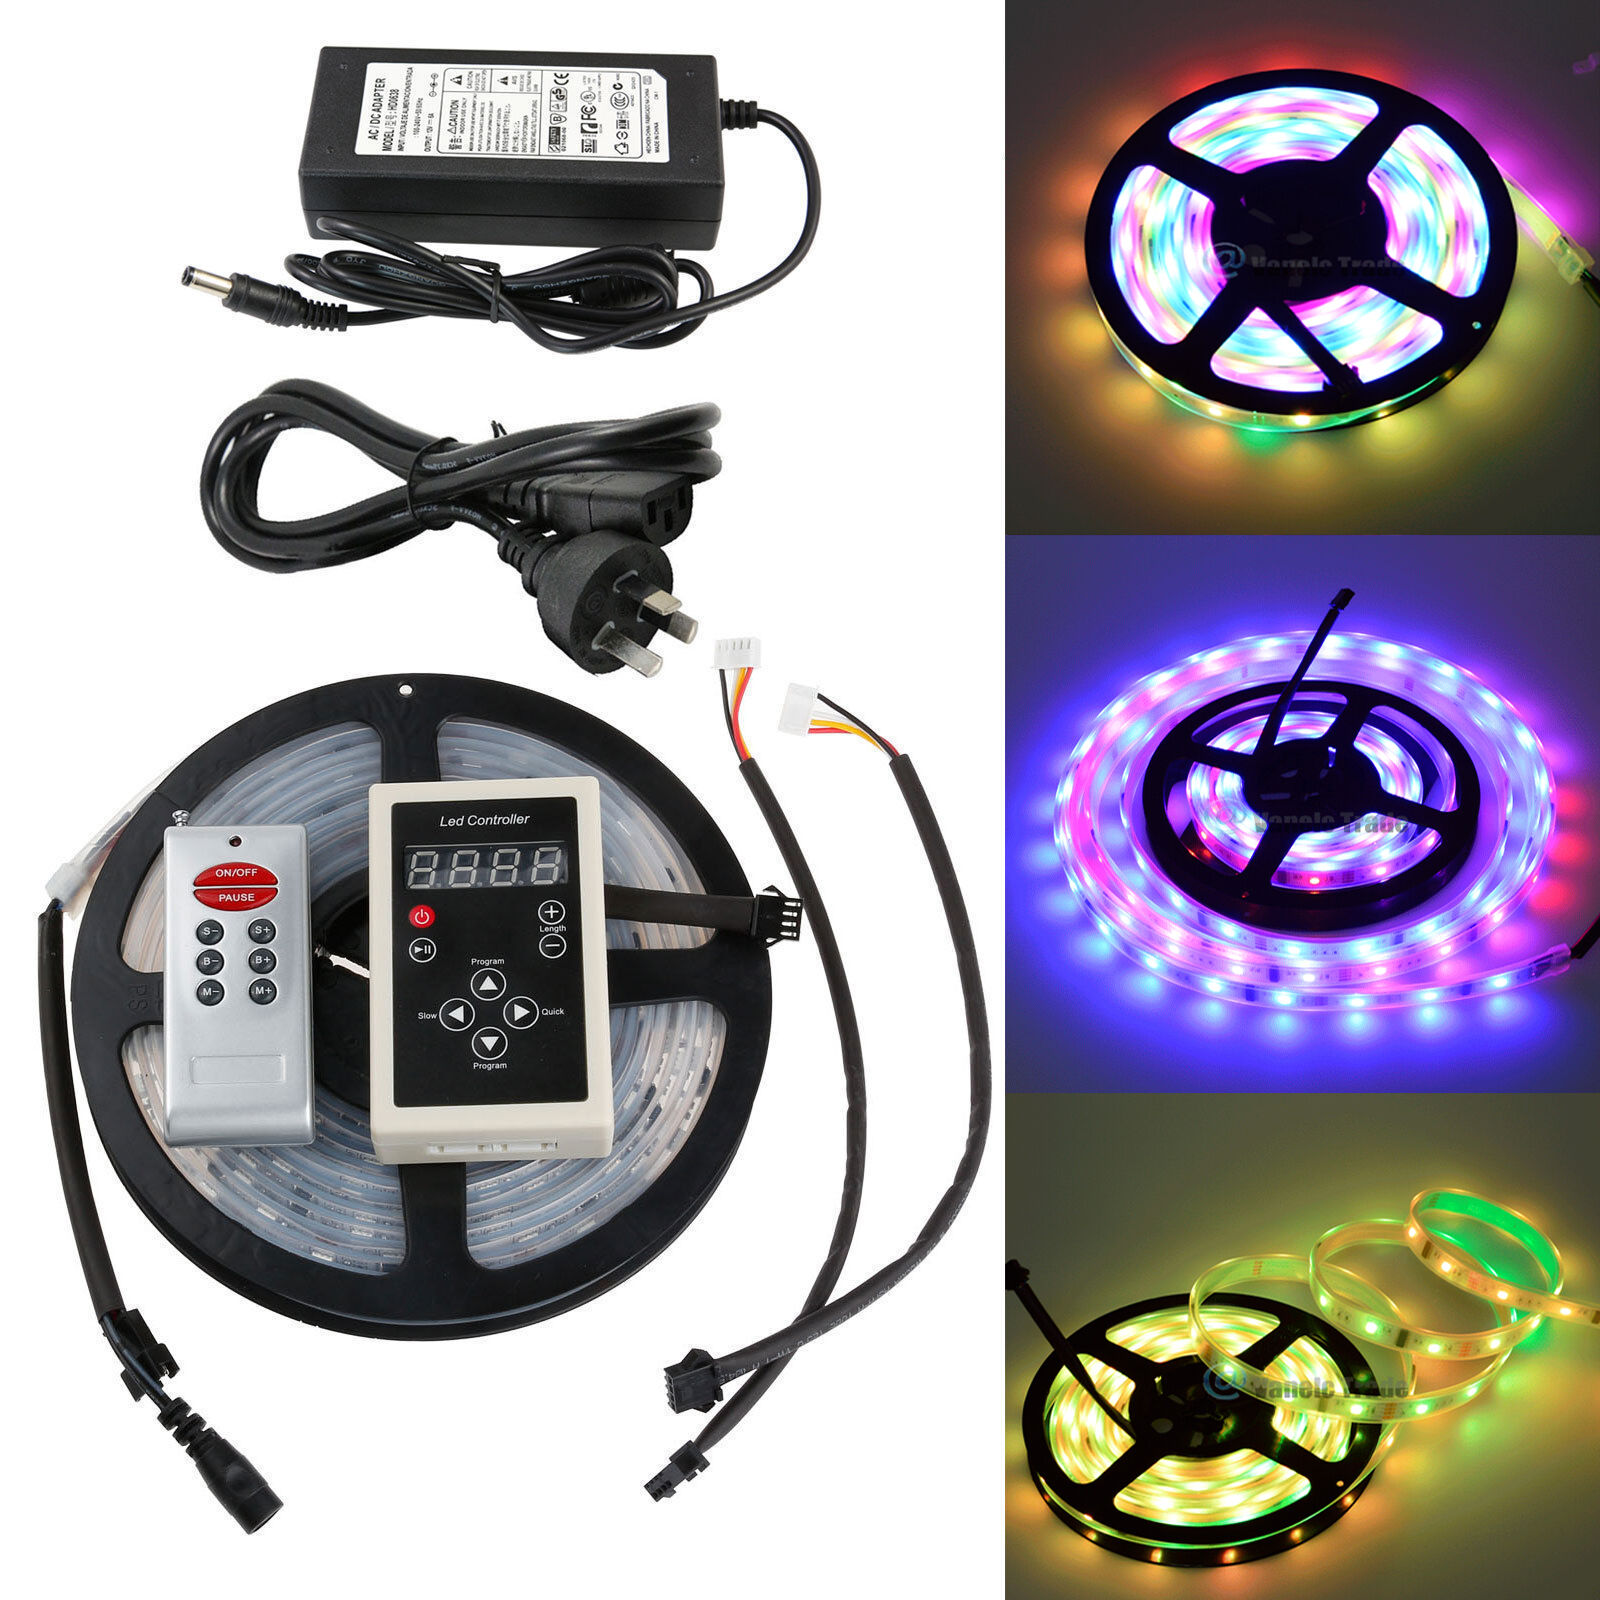 fits SMD 5050 5630 16ft 5m LED Lights RGB 3 feet 4 pin LED extension cord